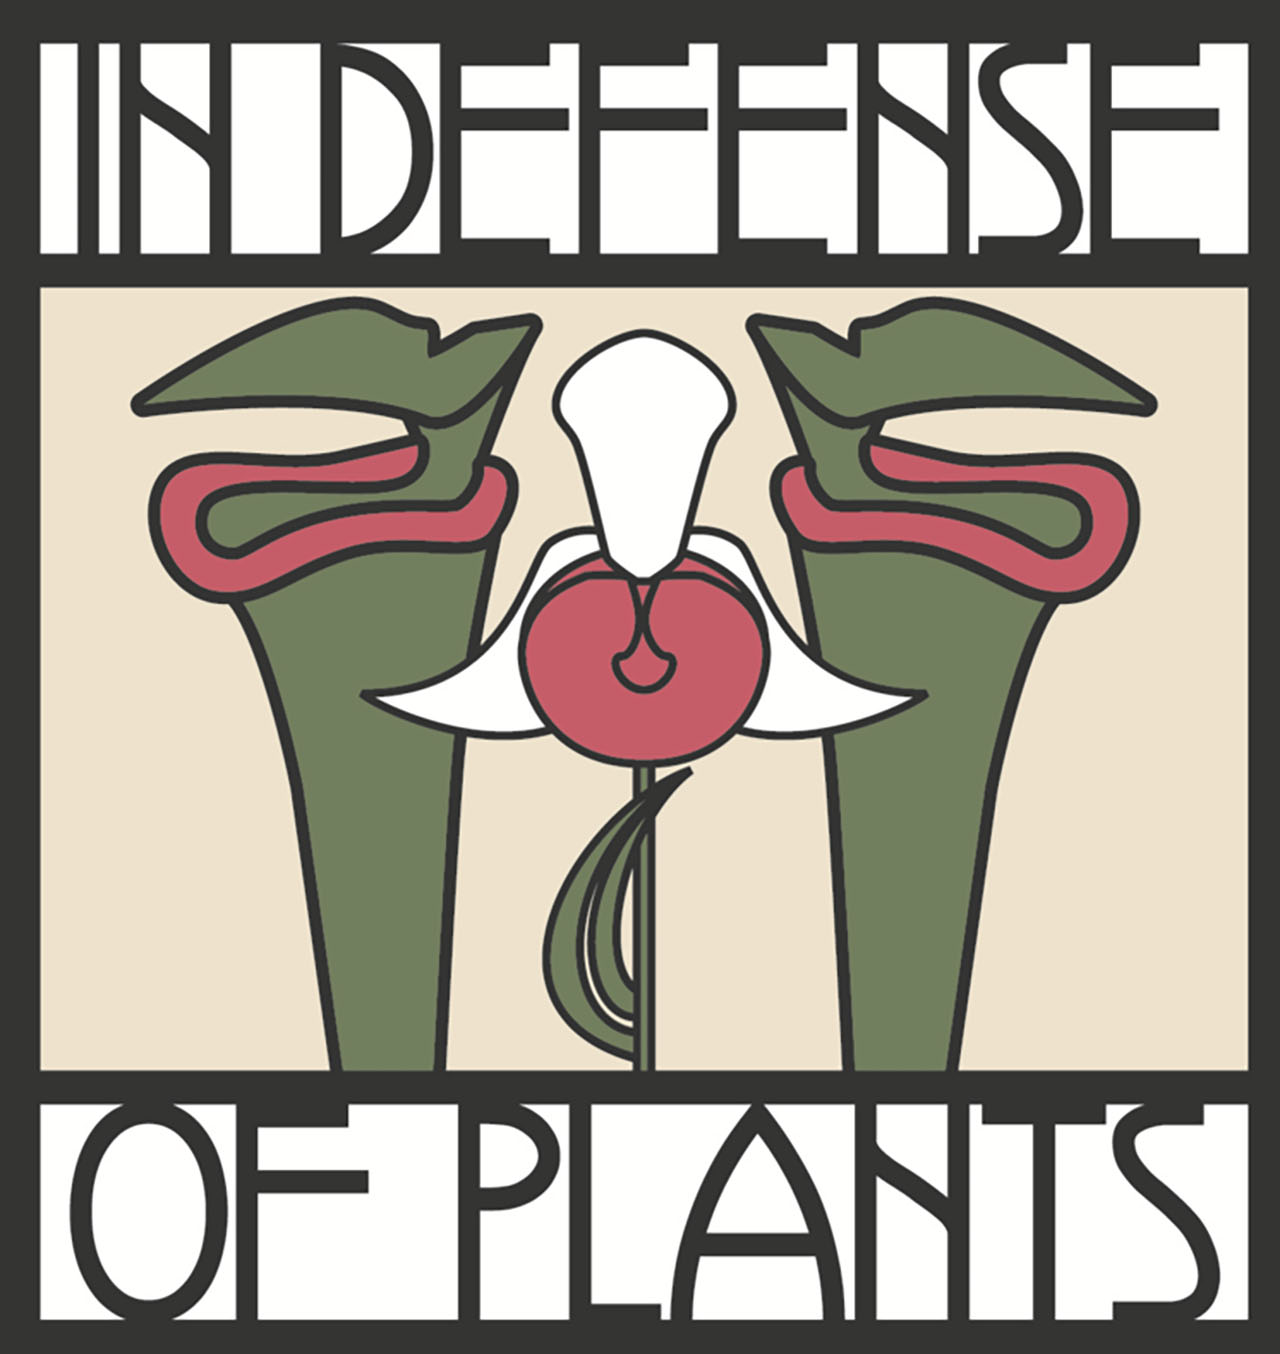 indefenseofplants podcast